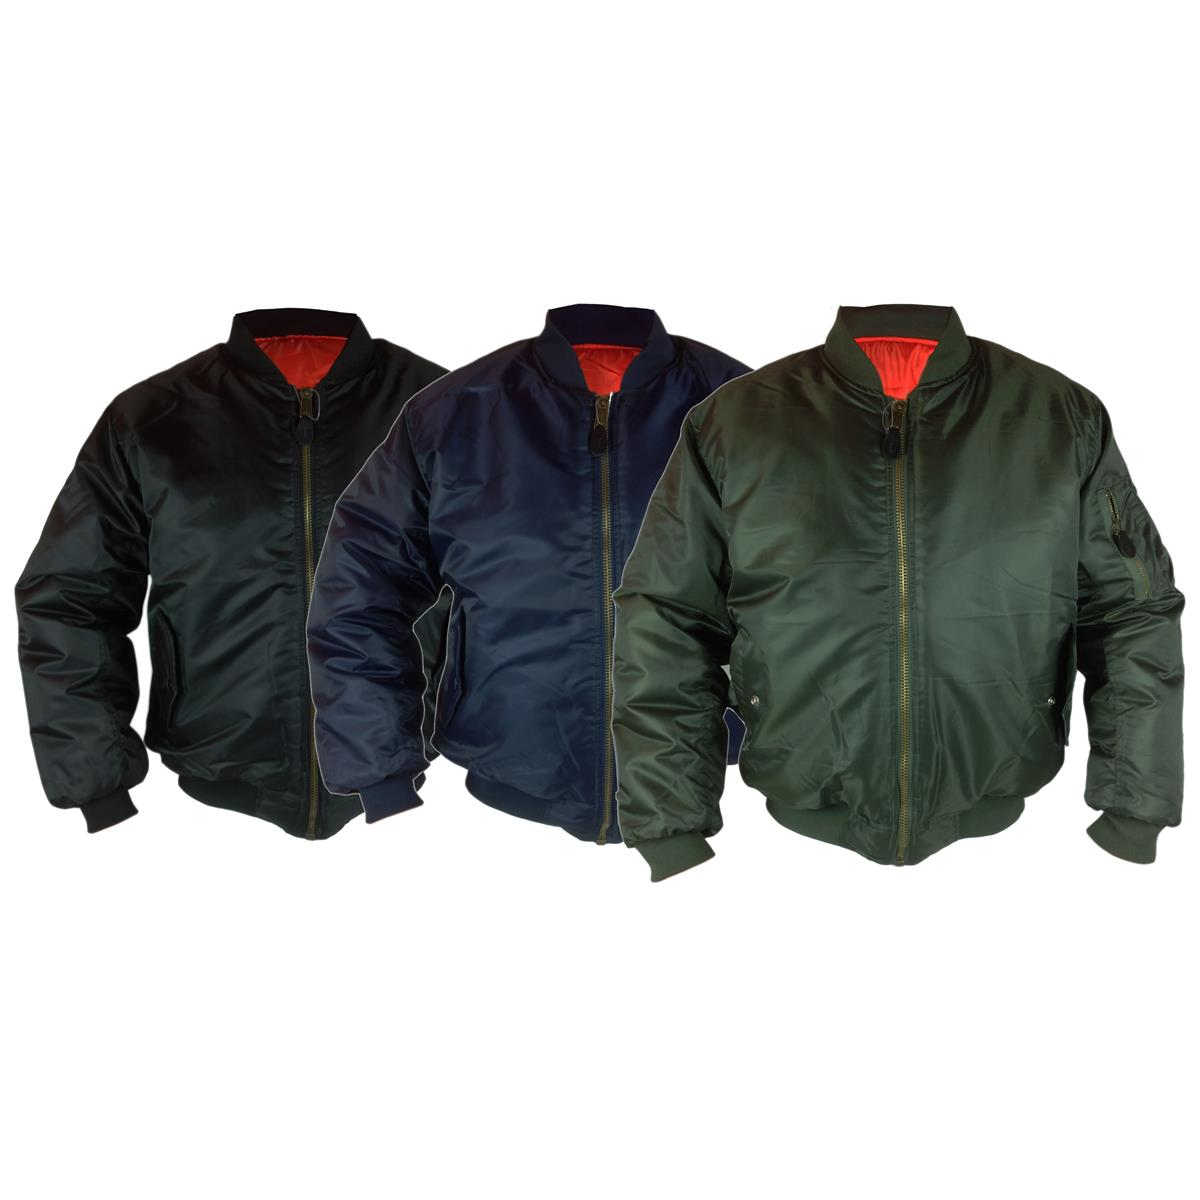 ee9859d5e Classic MA1 Military Pilot Flyer Bomber Jacket Reversible with Heavy Duty  METAL ZIP